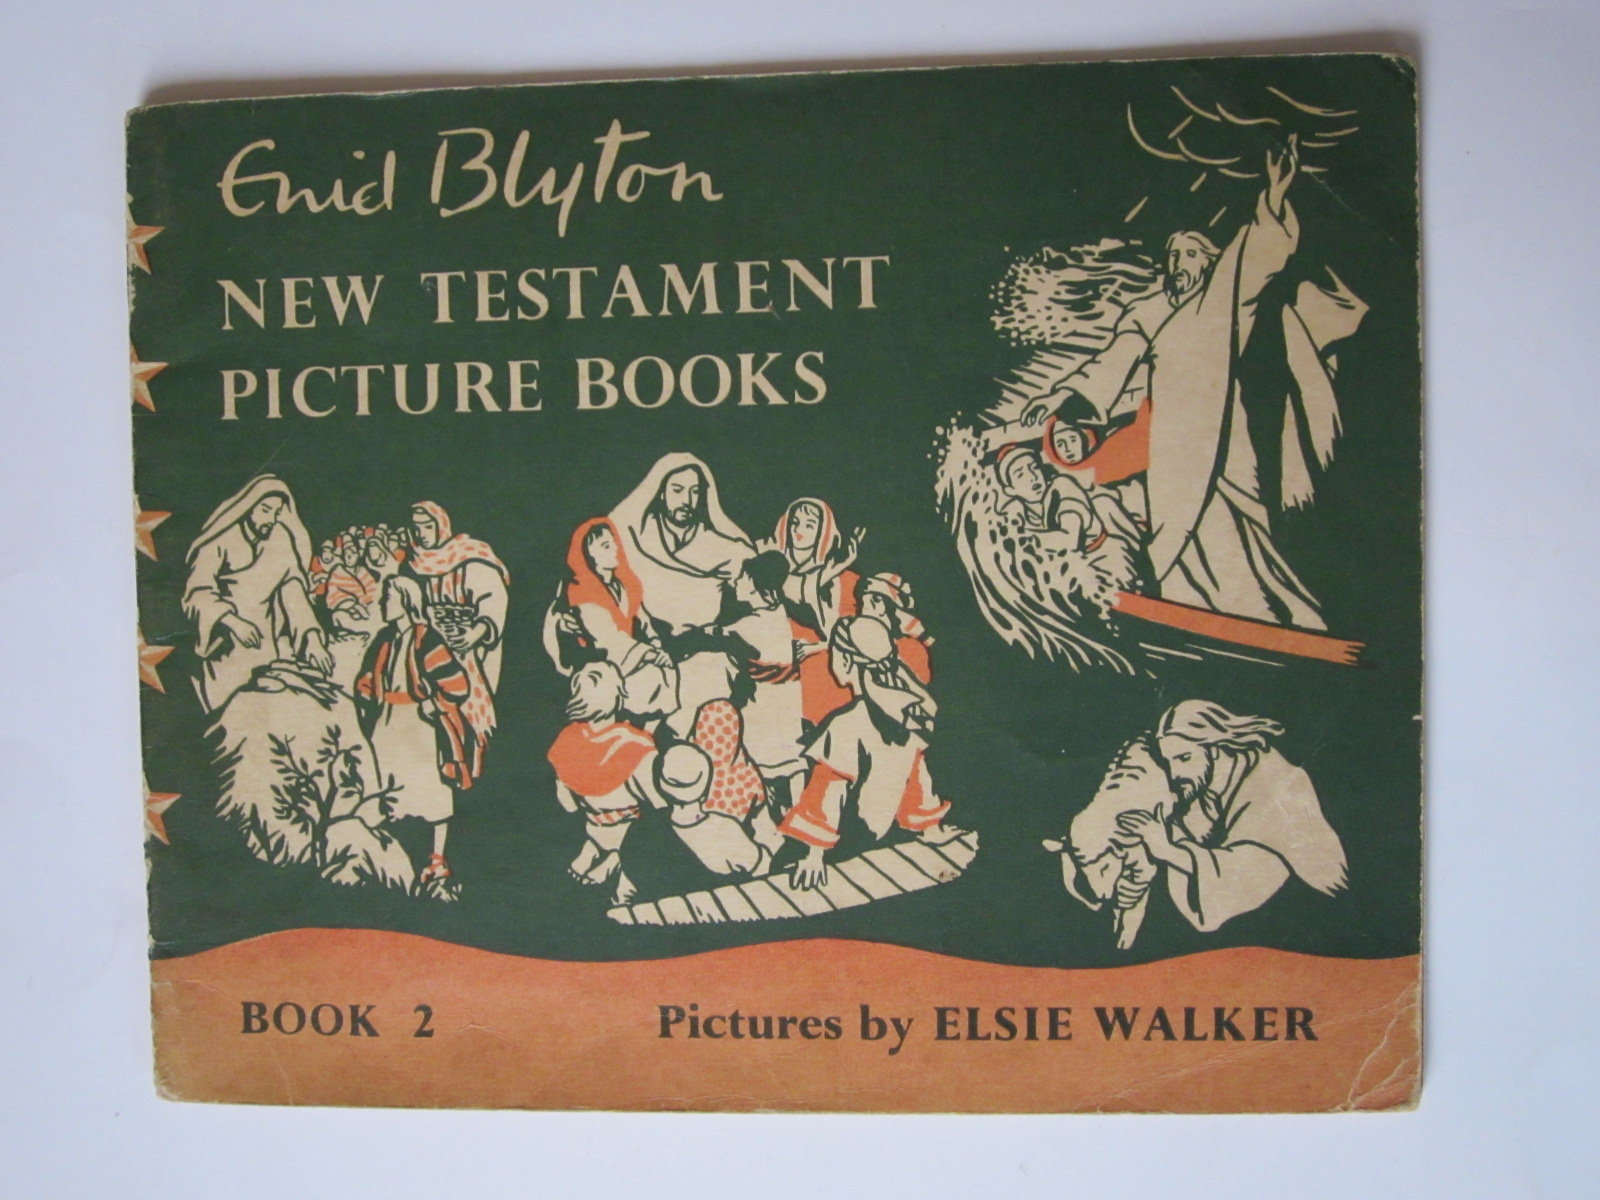 New Testament Bible Pictures Reference Book To Enid Blyton